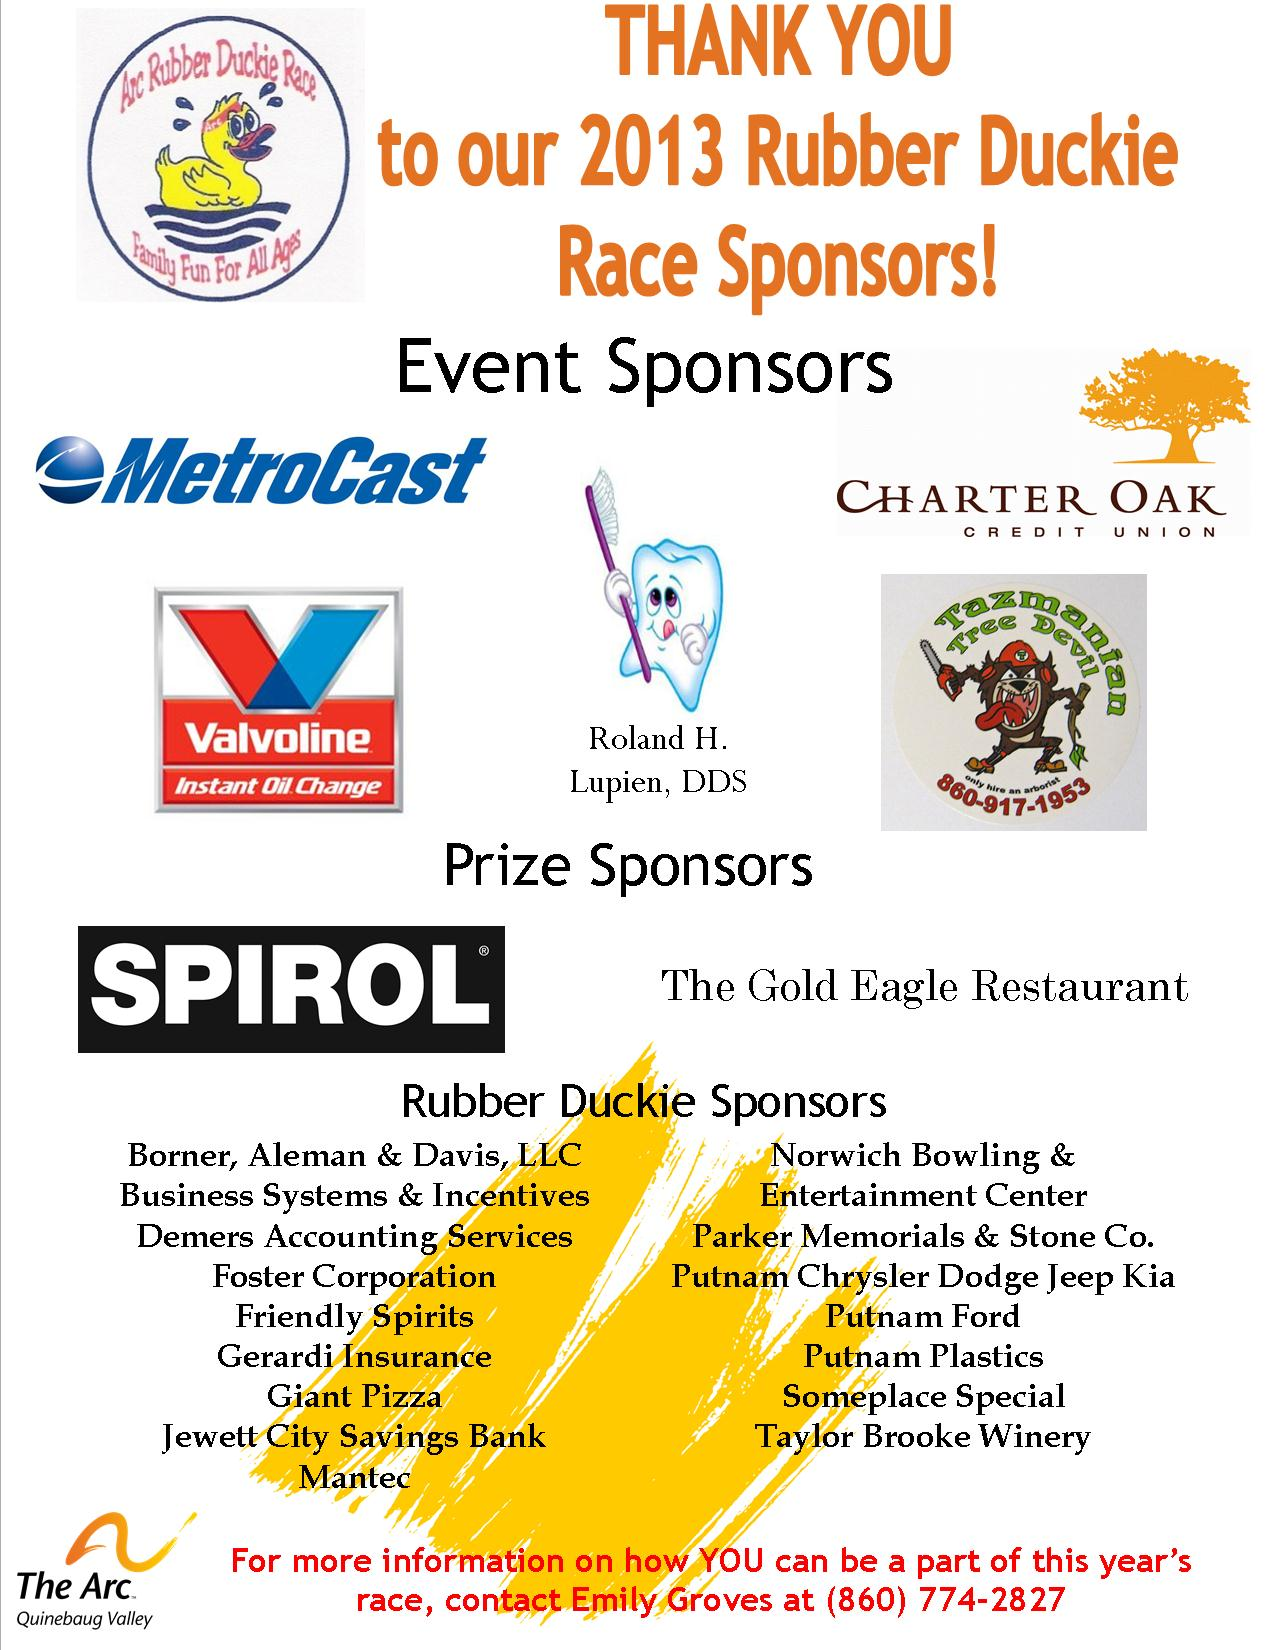 Thank you Duck Race sponsors 2013